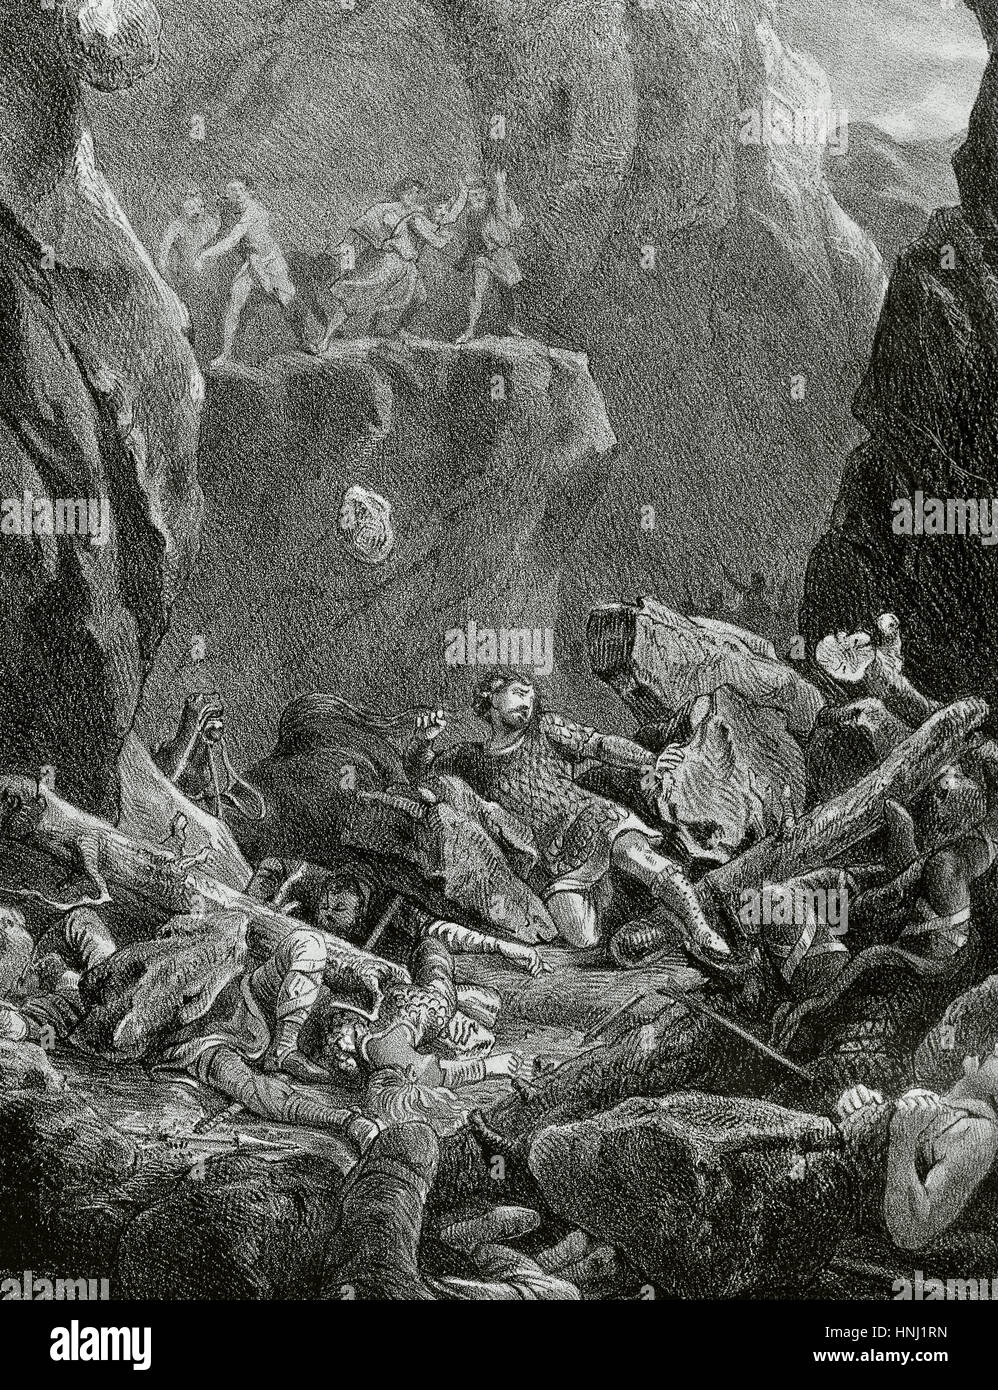 Charlemagne campaign in the Iberian Peninsula. The Battle of Roncevaux Pass in 778. Death of Frankish military leader - Stock Image